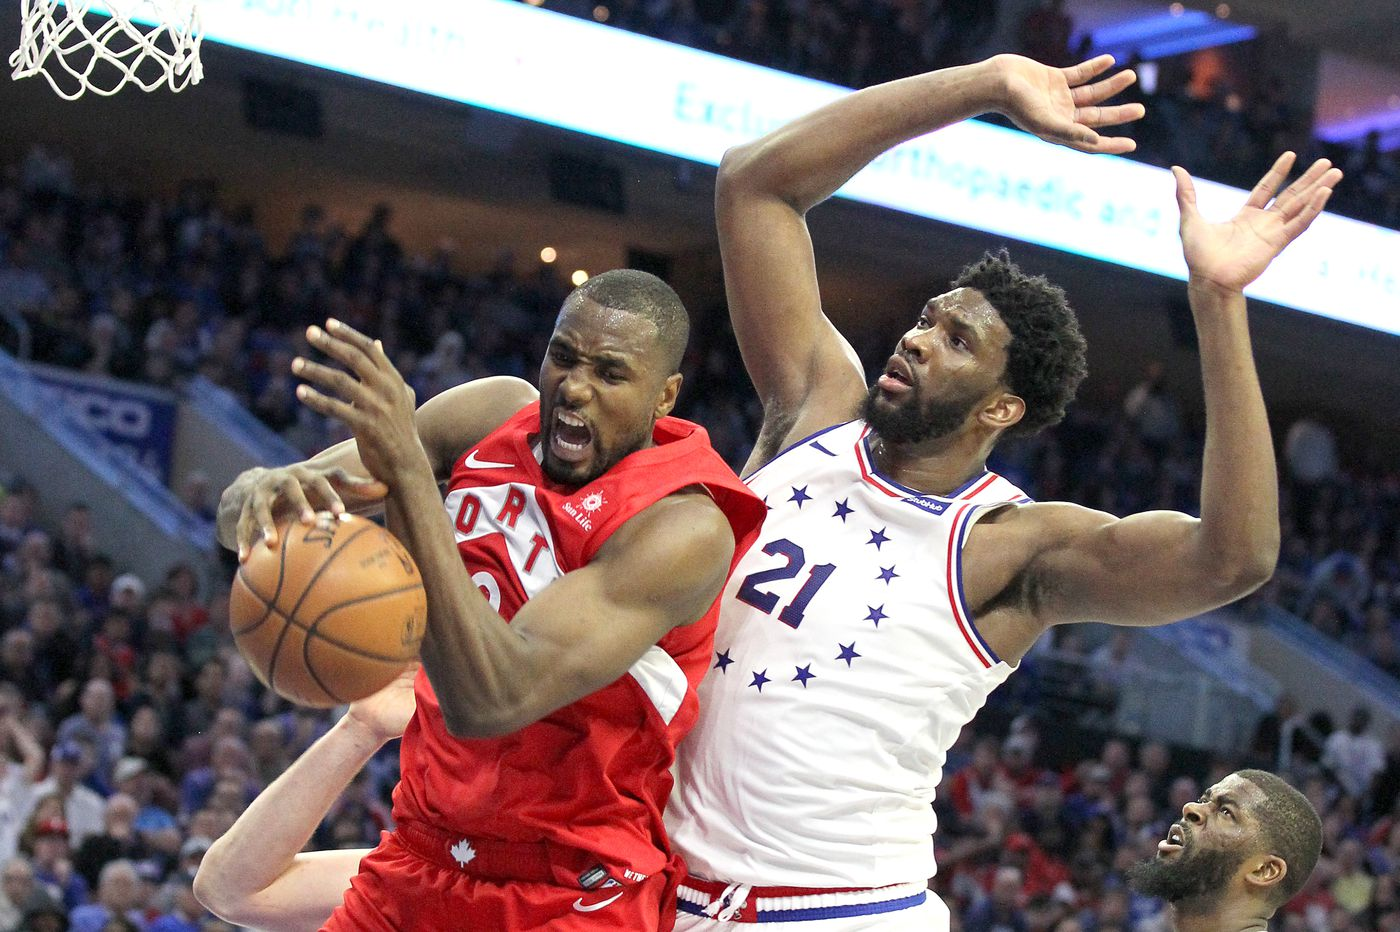 Raptors dominate 76ers in Game 5 to take 3-2 series lead